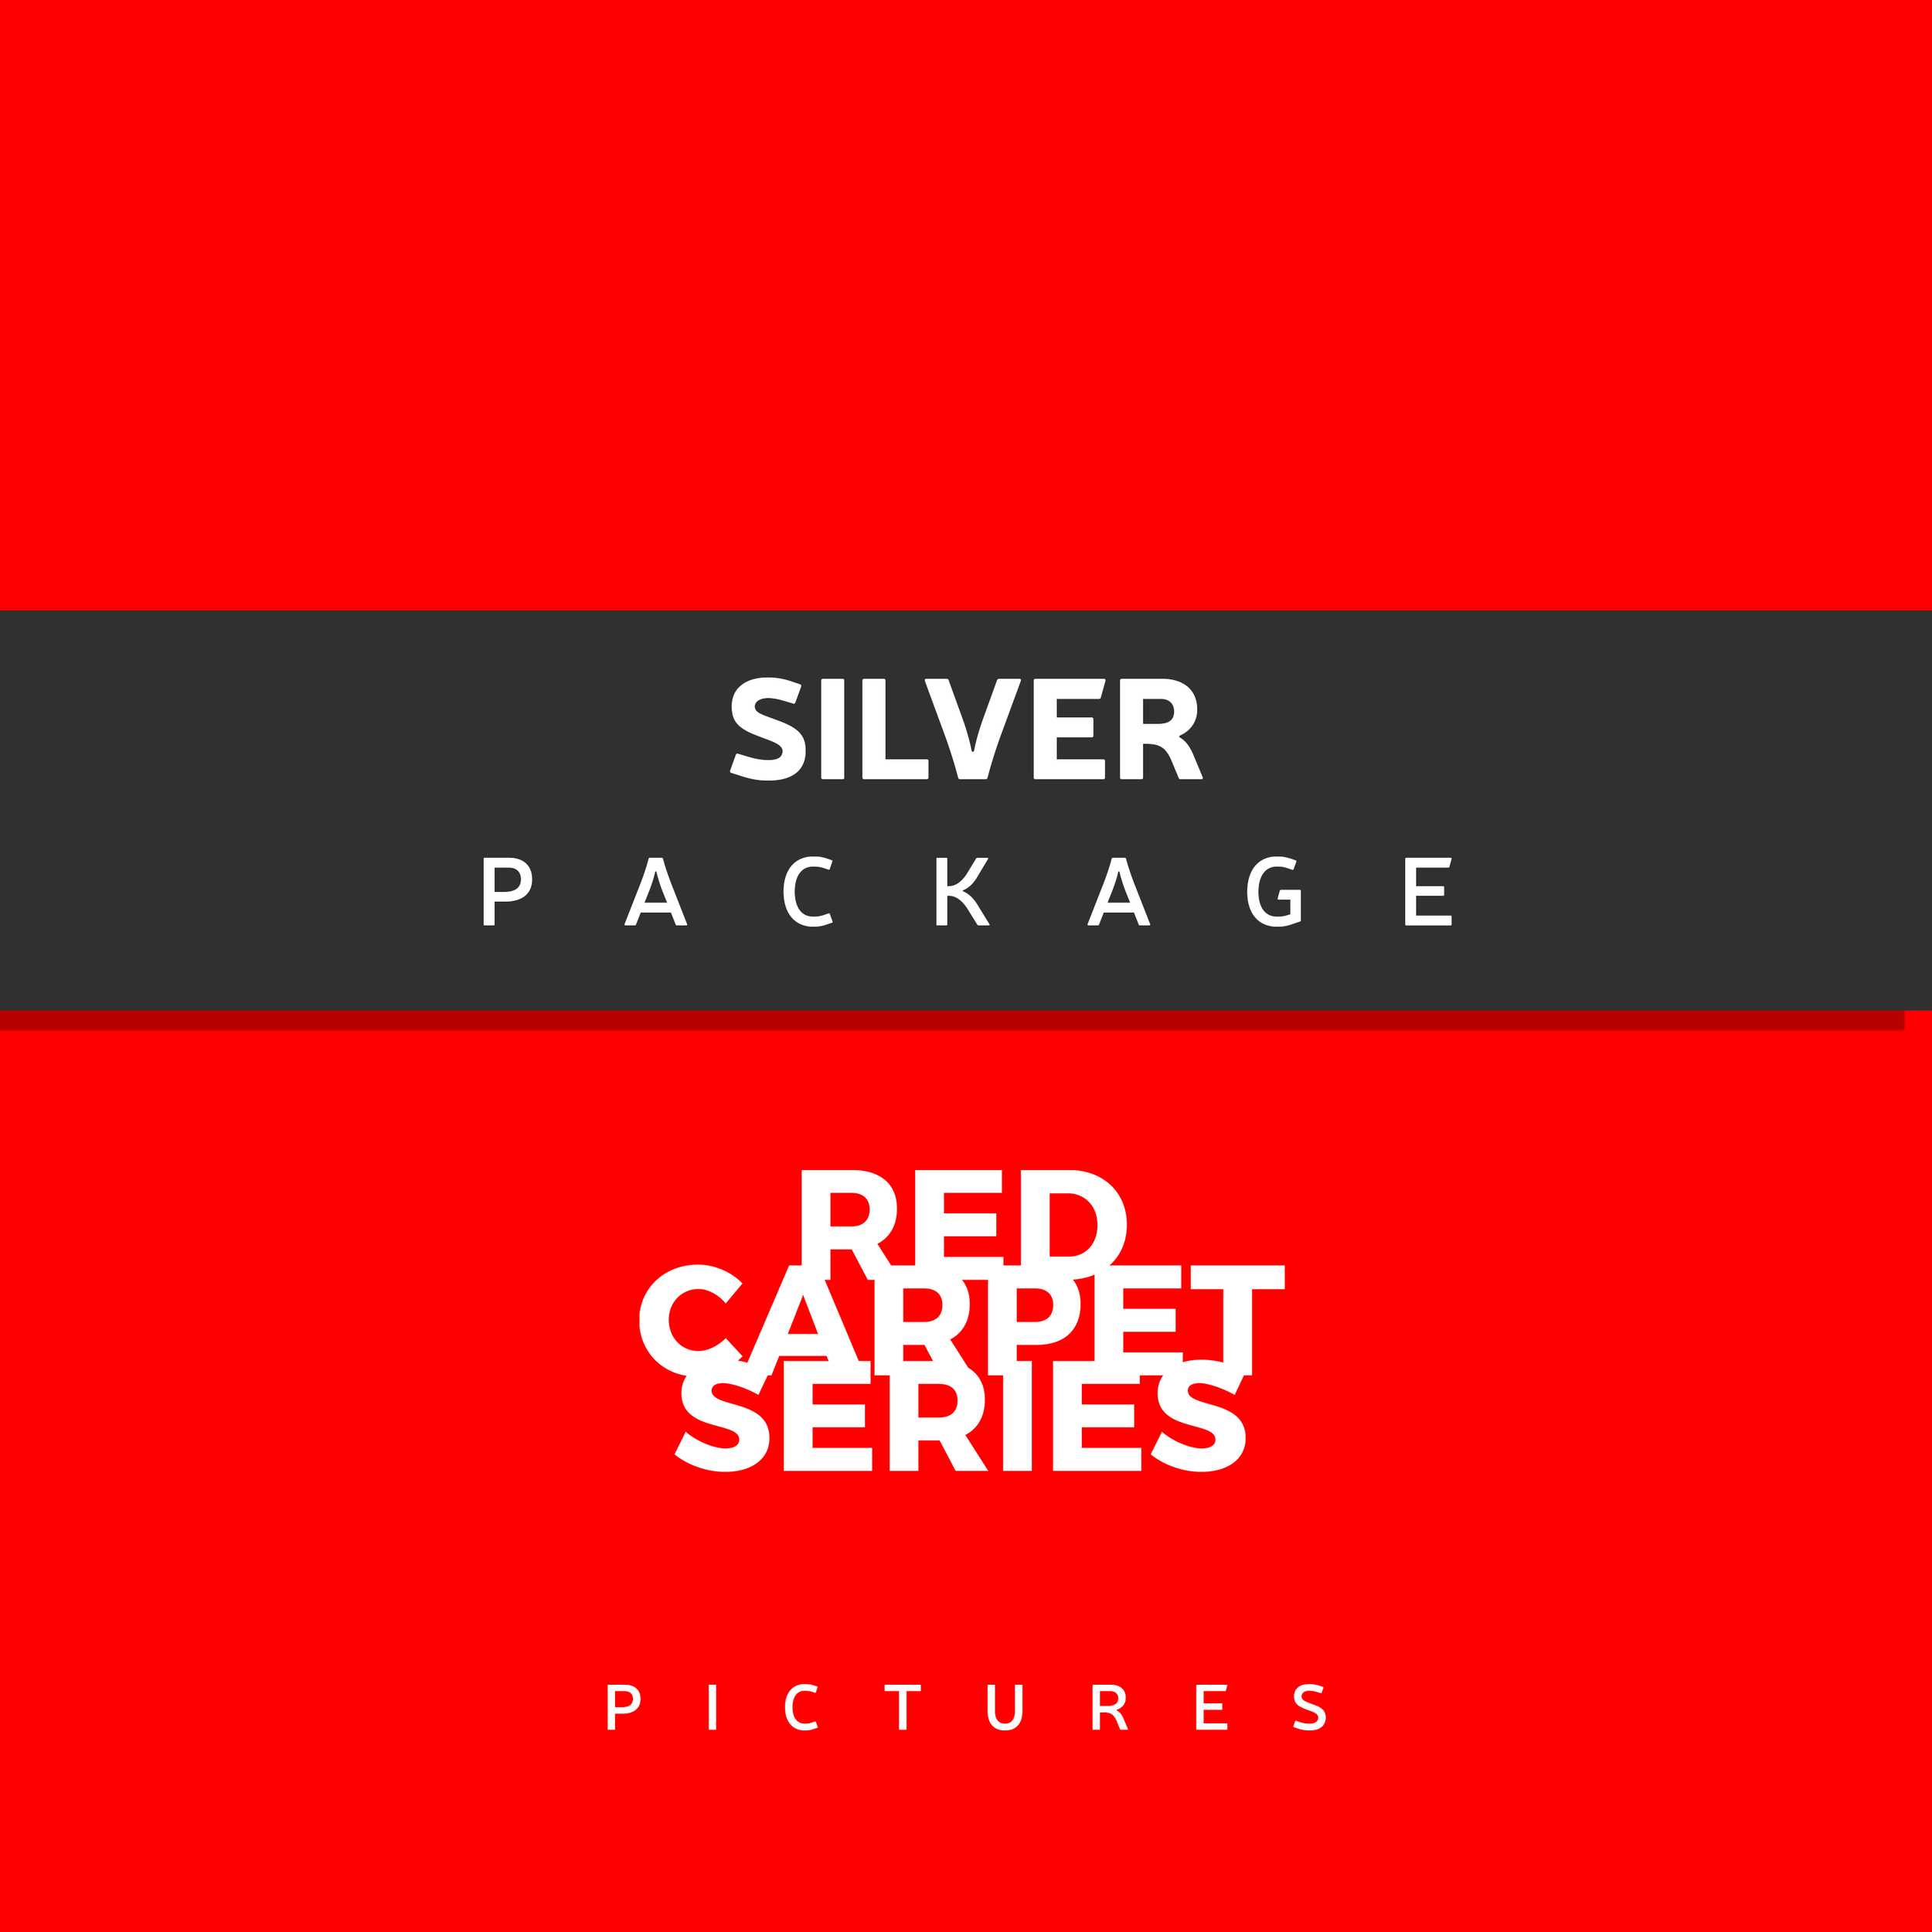 Red-Carpet-Series-SILVER-PACKAGE.png